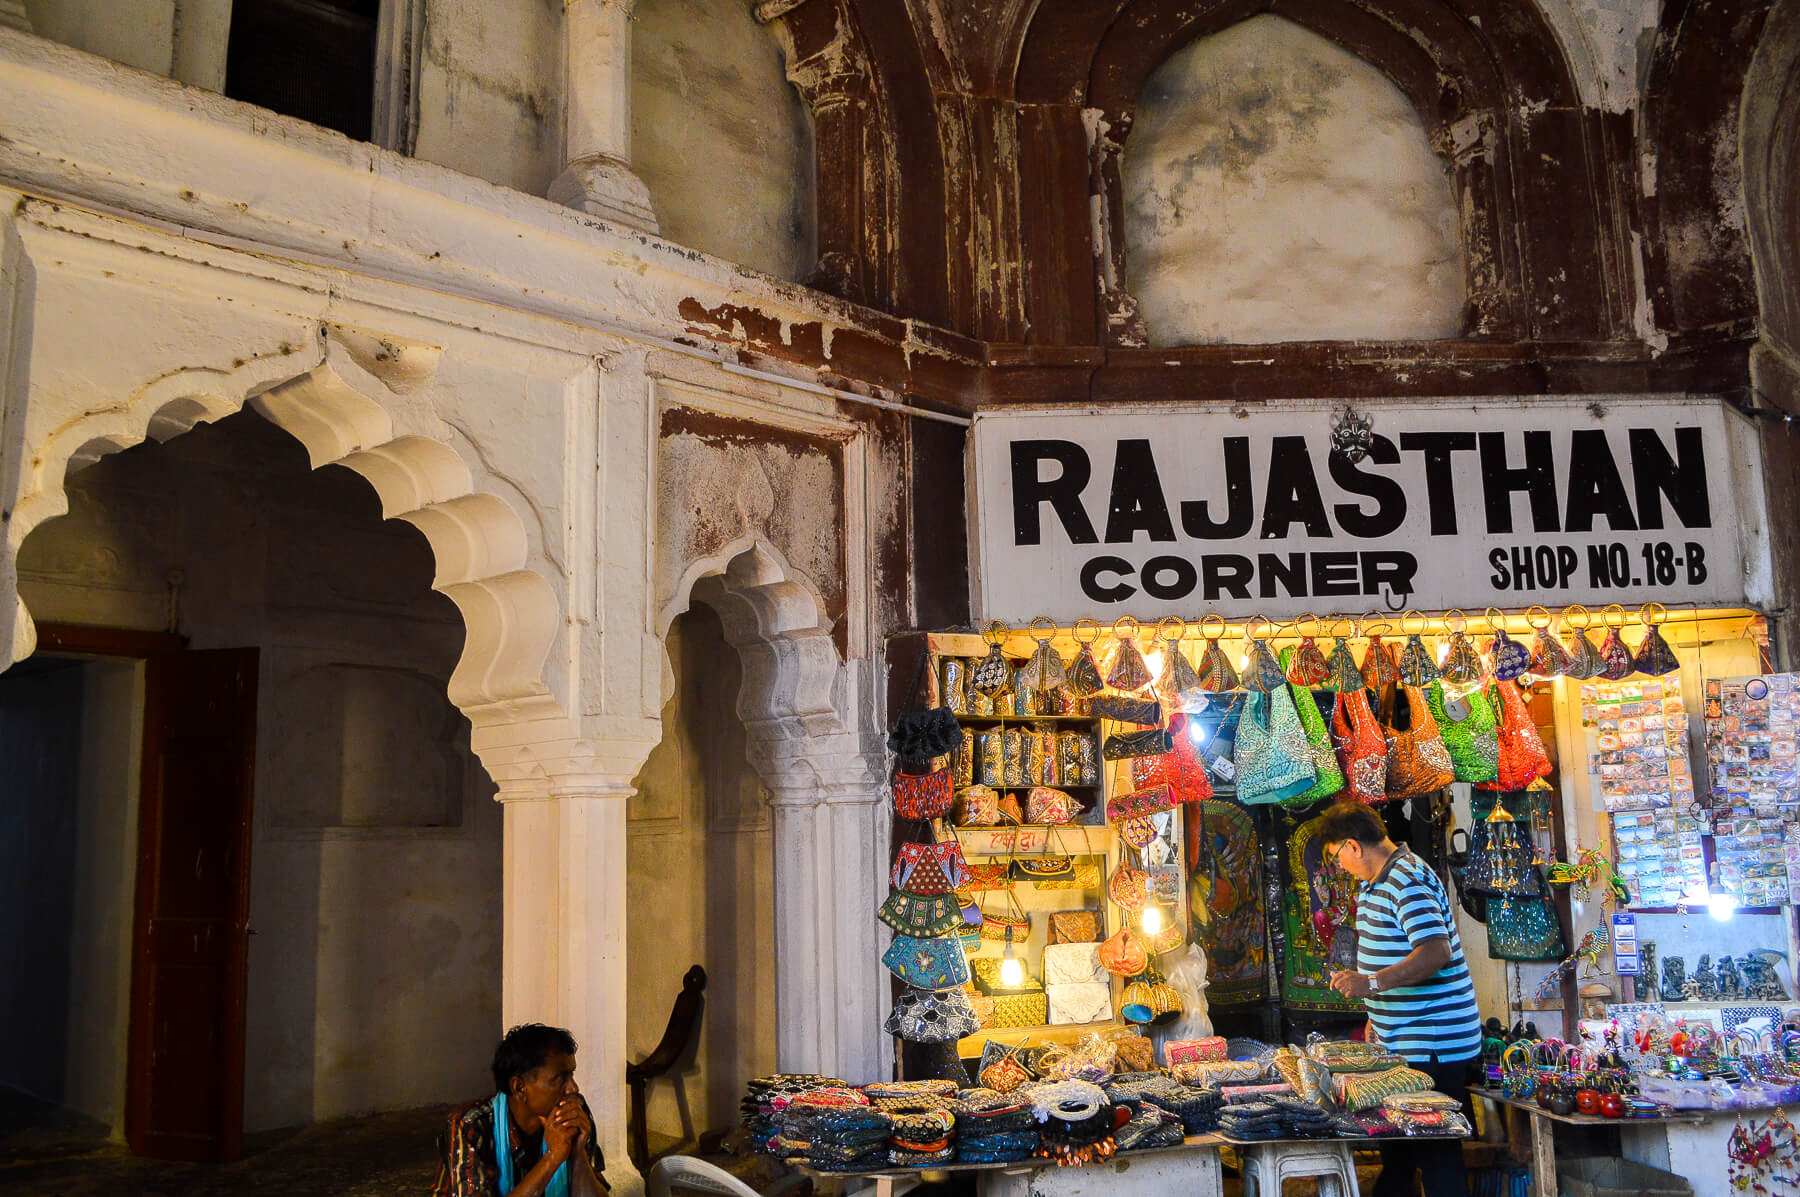 Indian shop called Rajasthan Corner